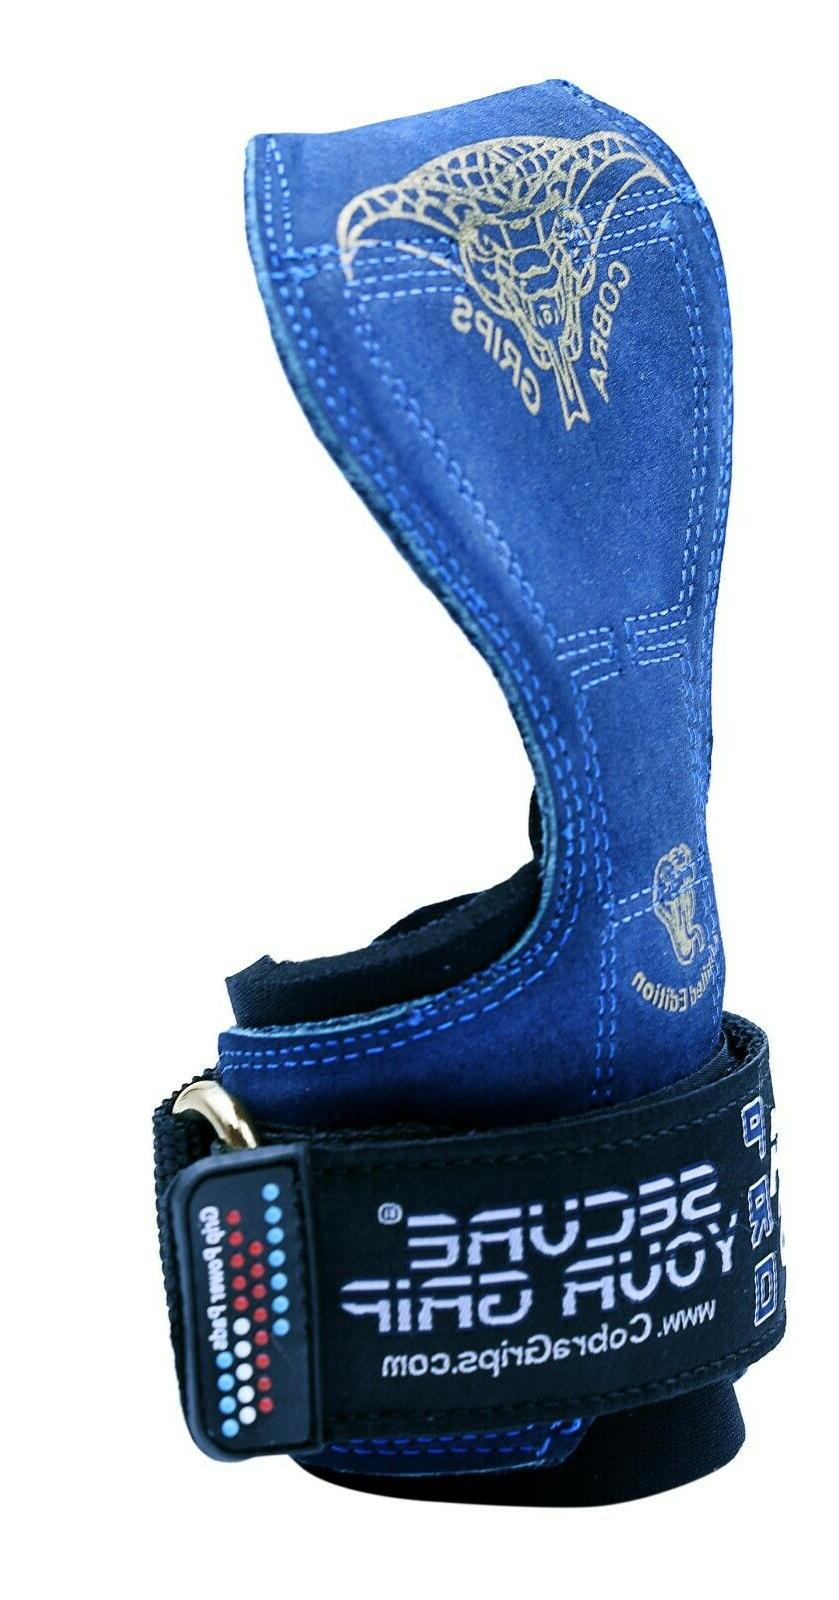 Cobra Weight Lifting Wraps Grips Gloves